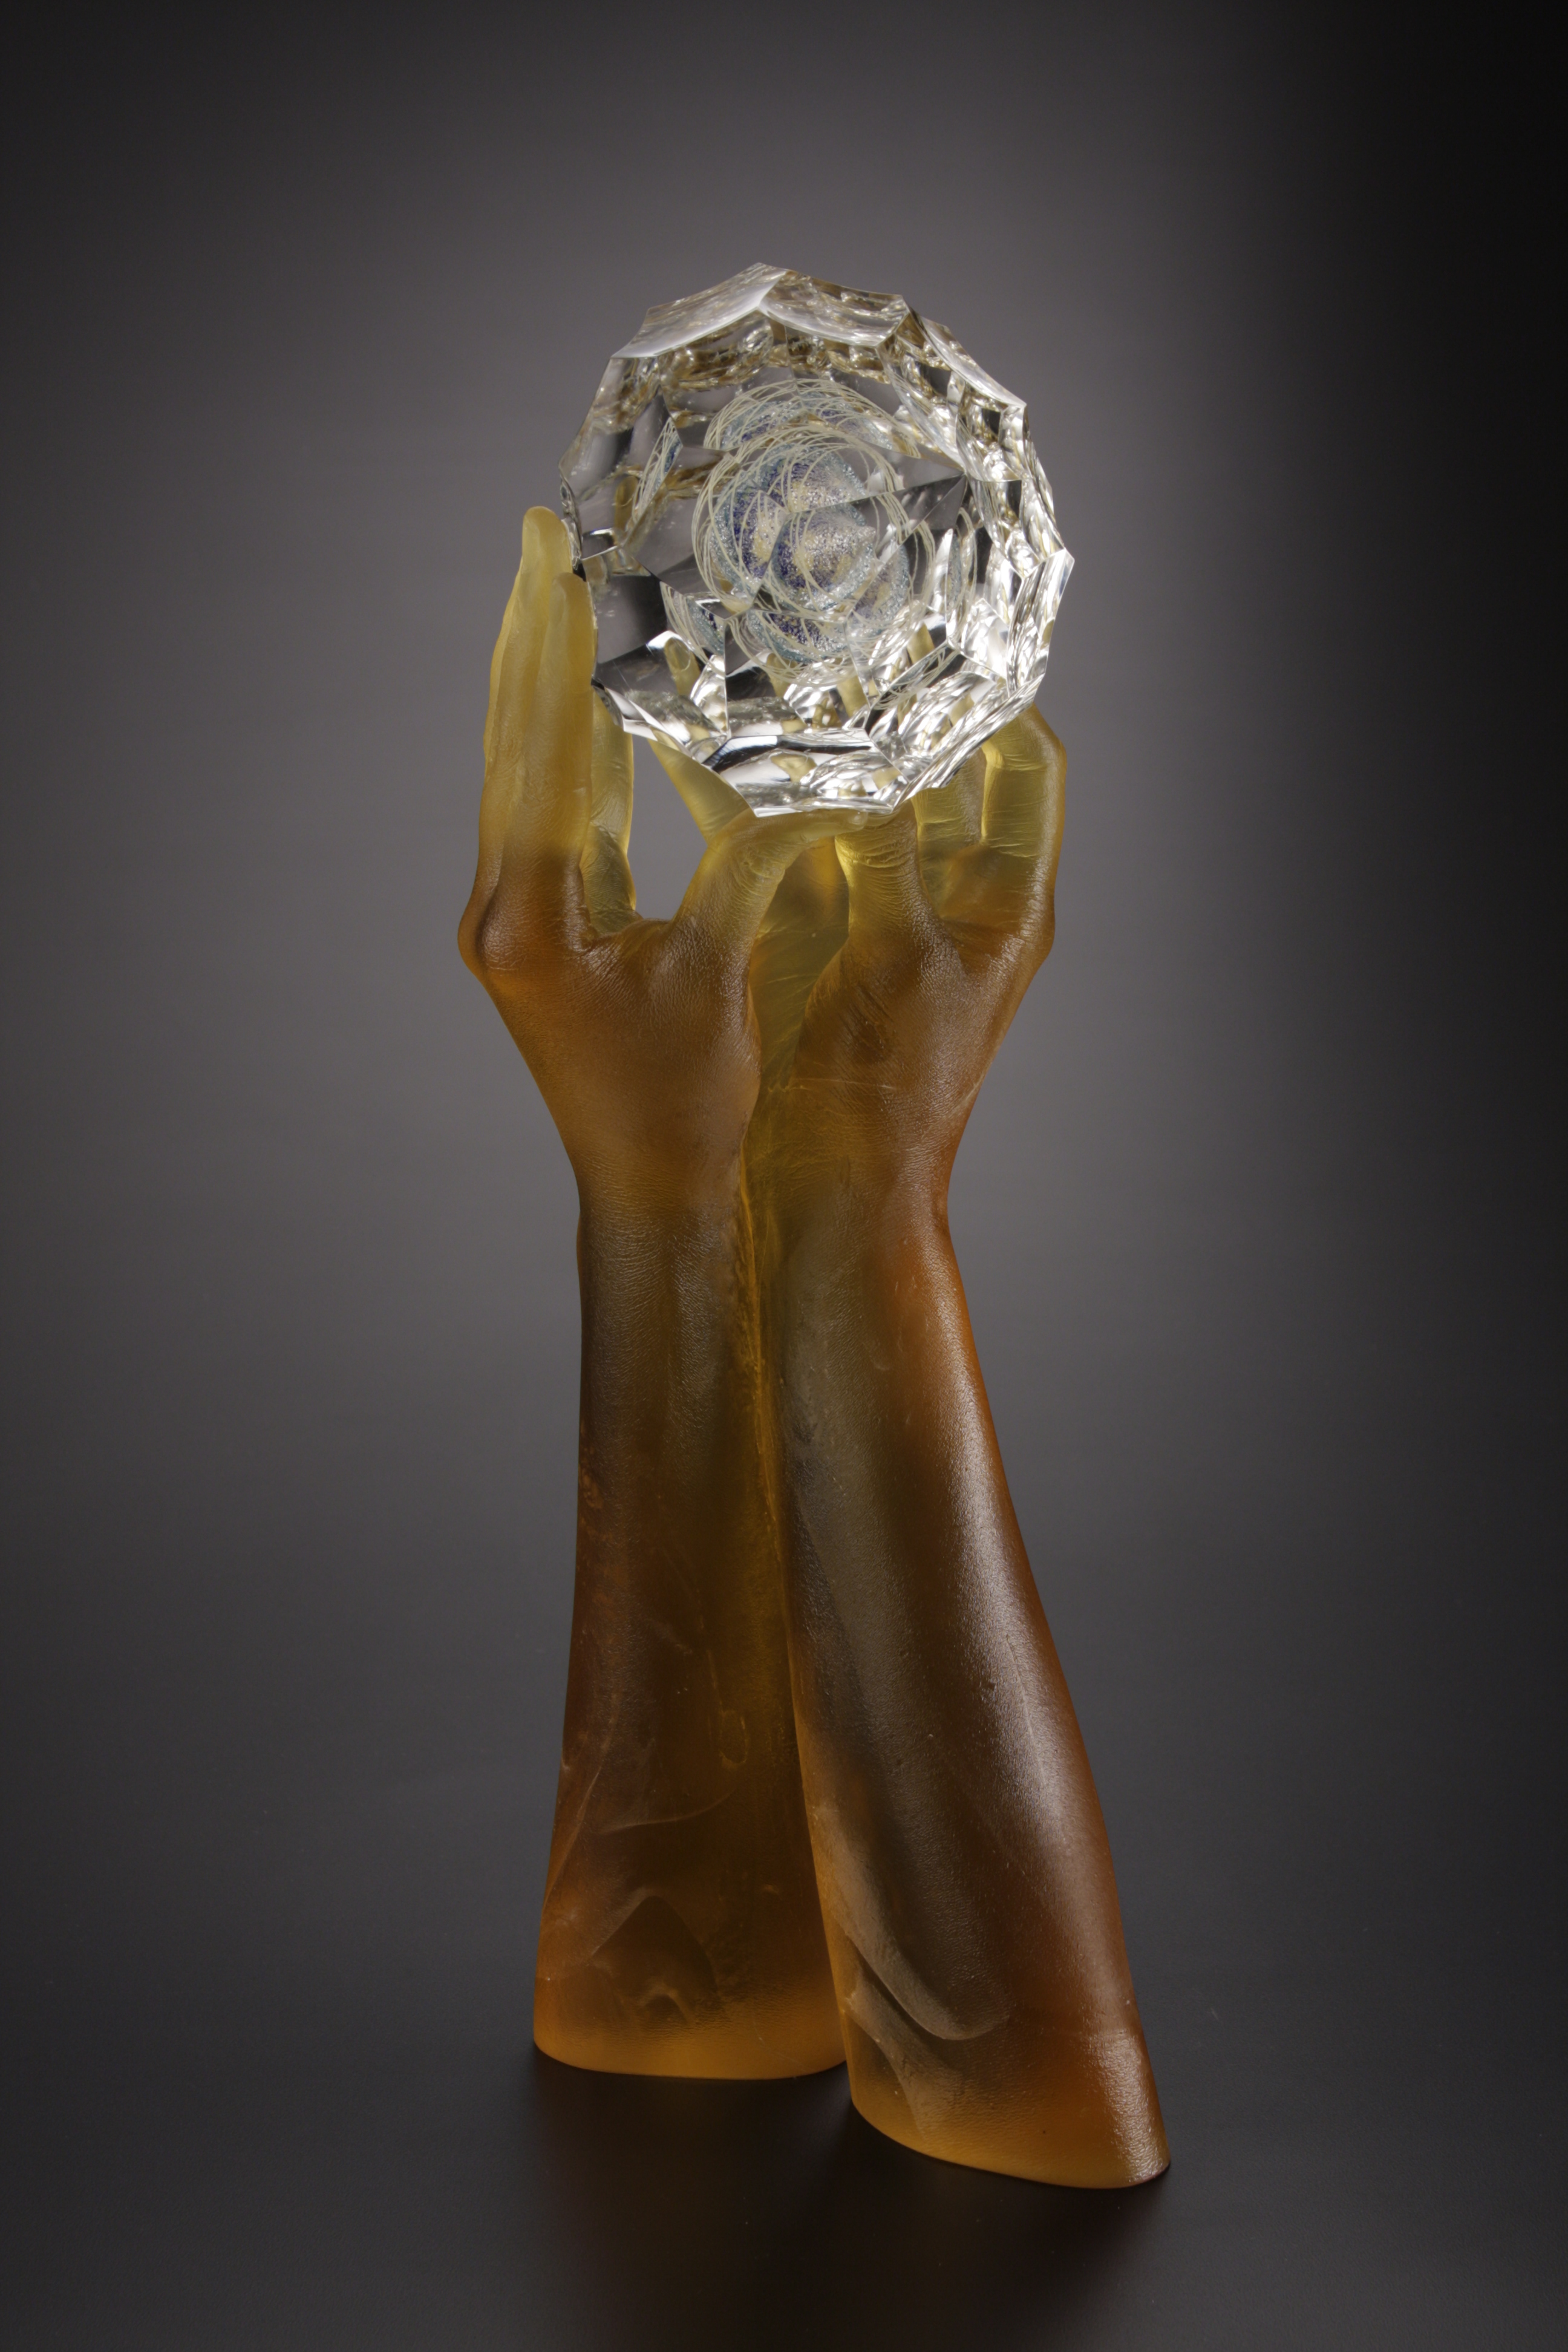 Side view of sculpture of glass hands holding lens cut jewel.